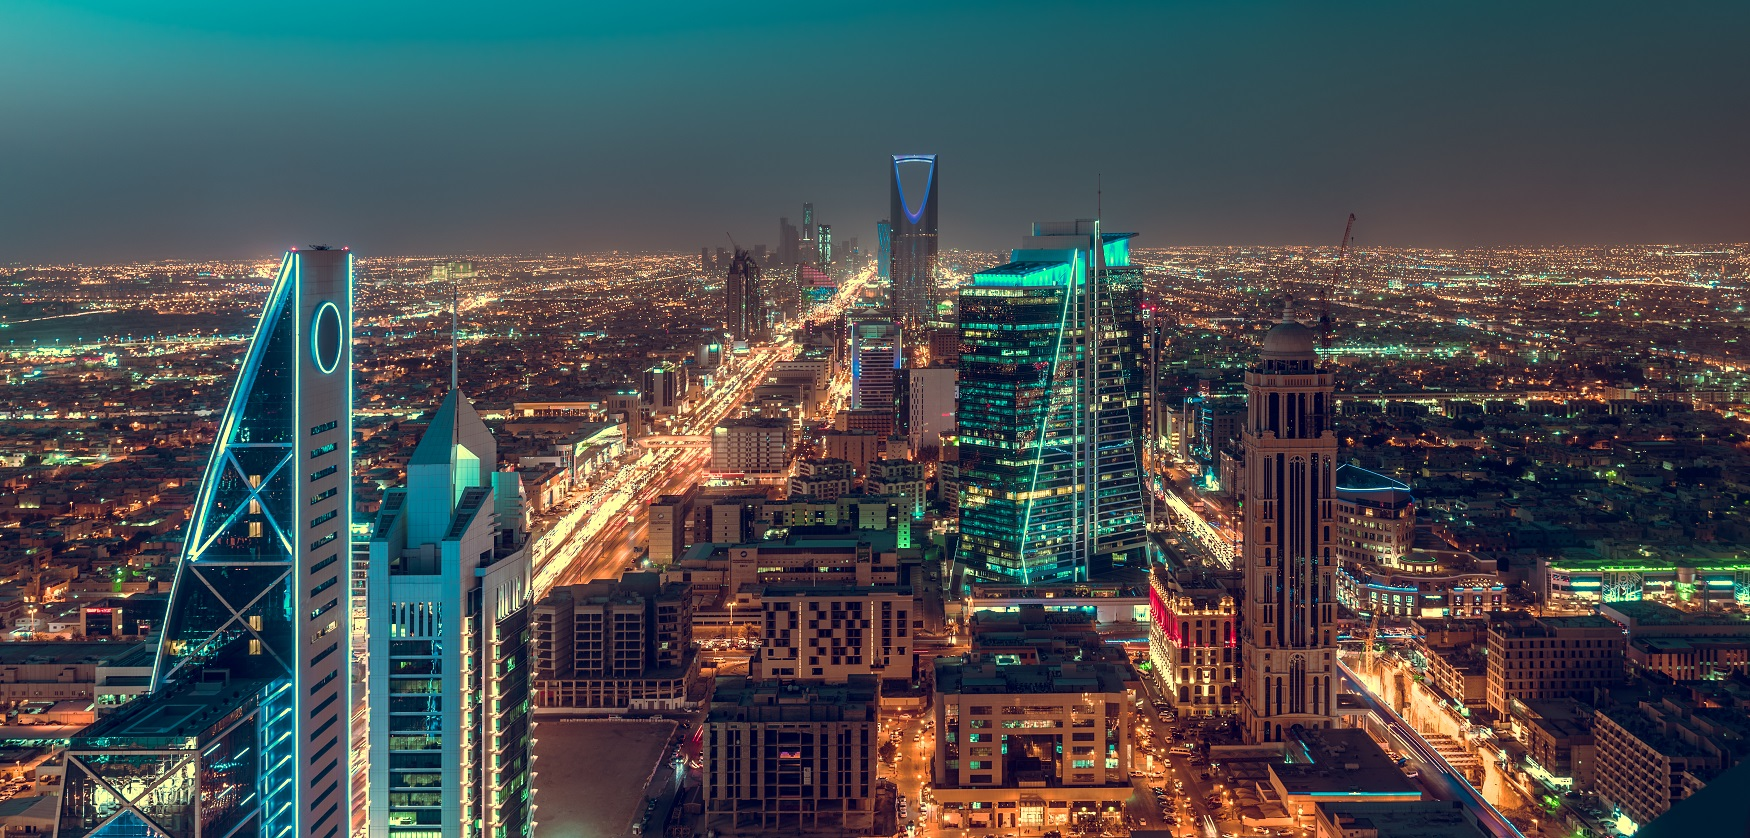 night view of Riyadh with all the lights